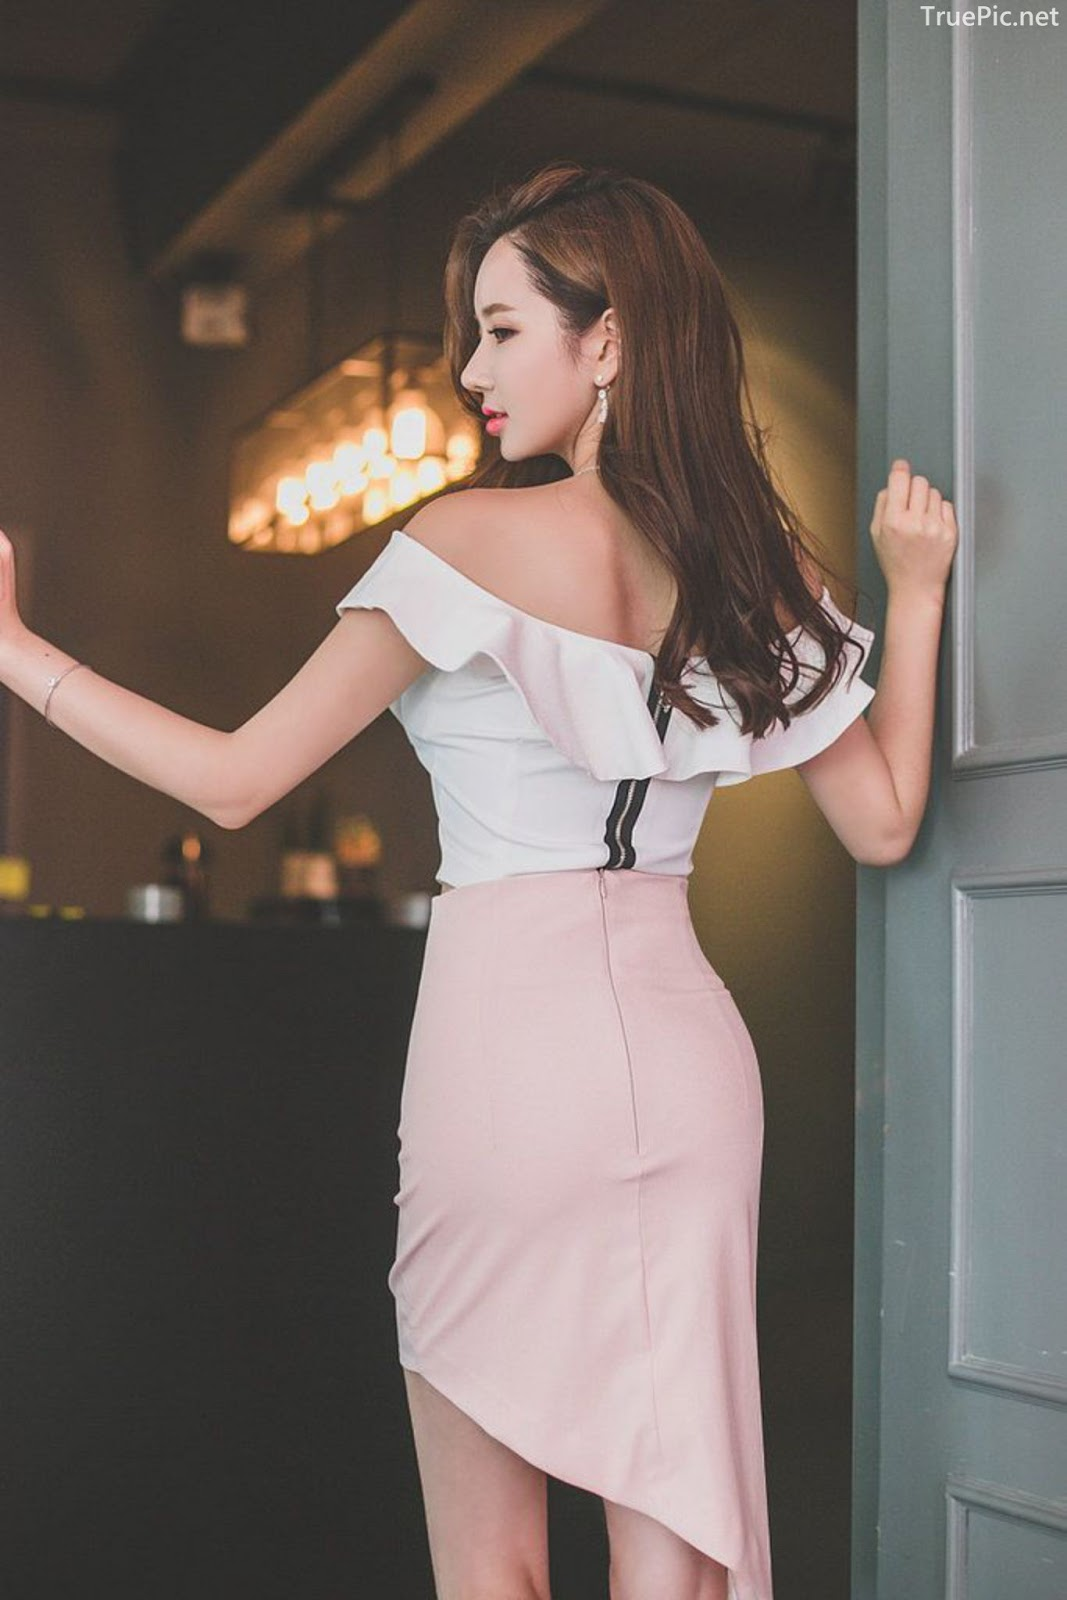 Lee Yeon Jeong - Indoor Photoshoot Collection - Korean fashion model - Part 3 - Picture 9